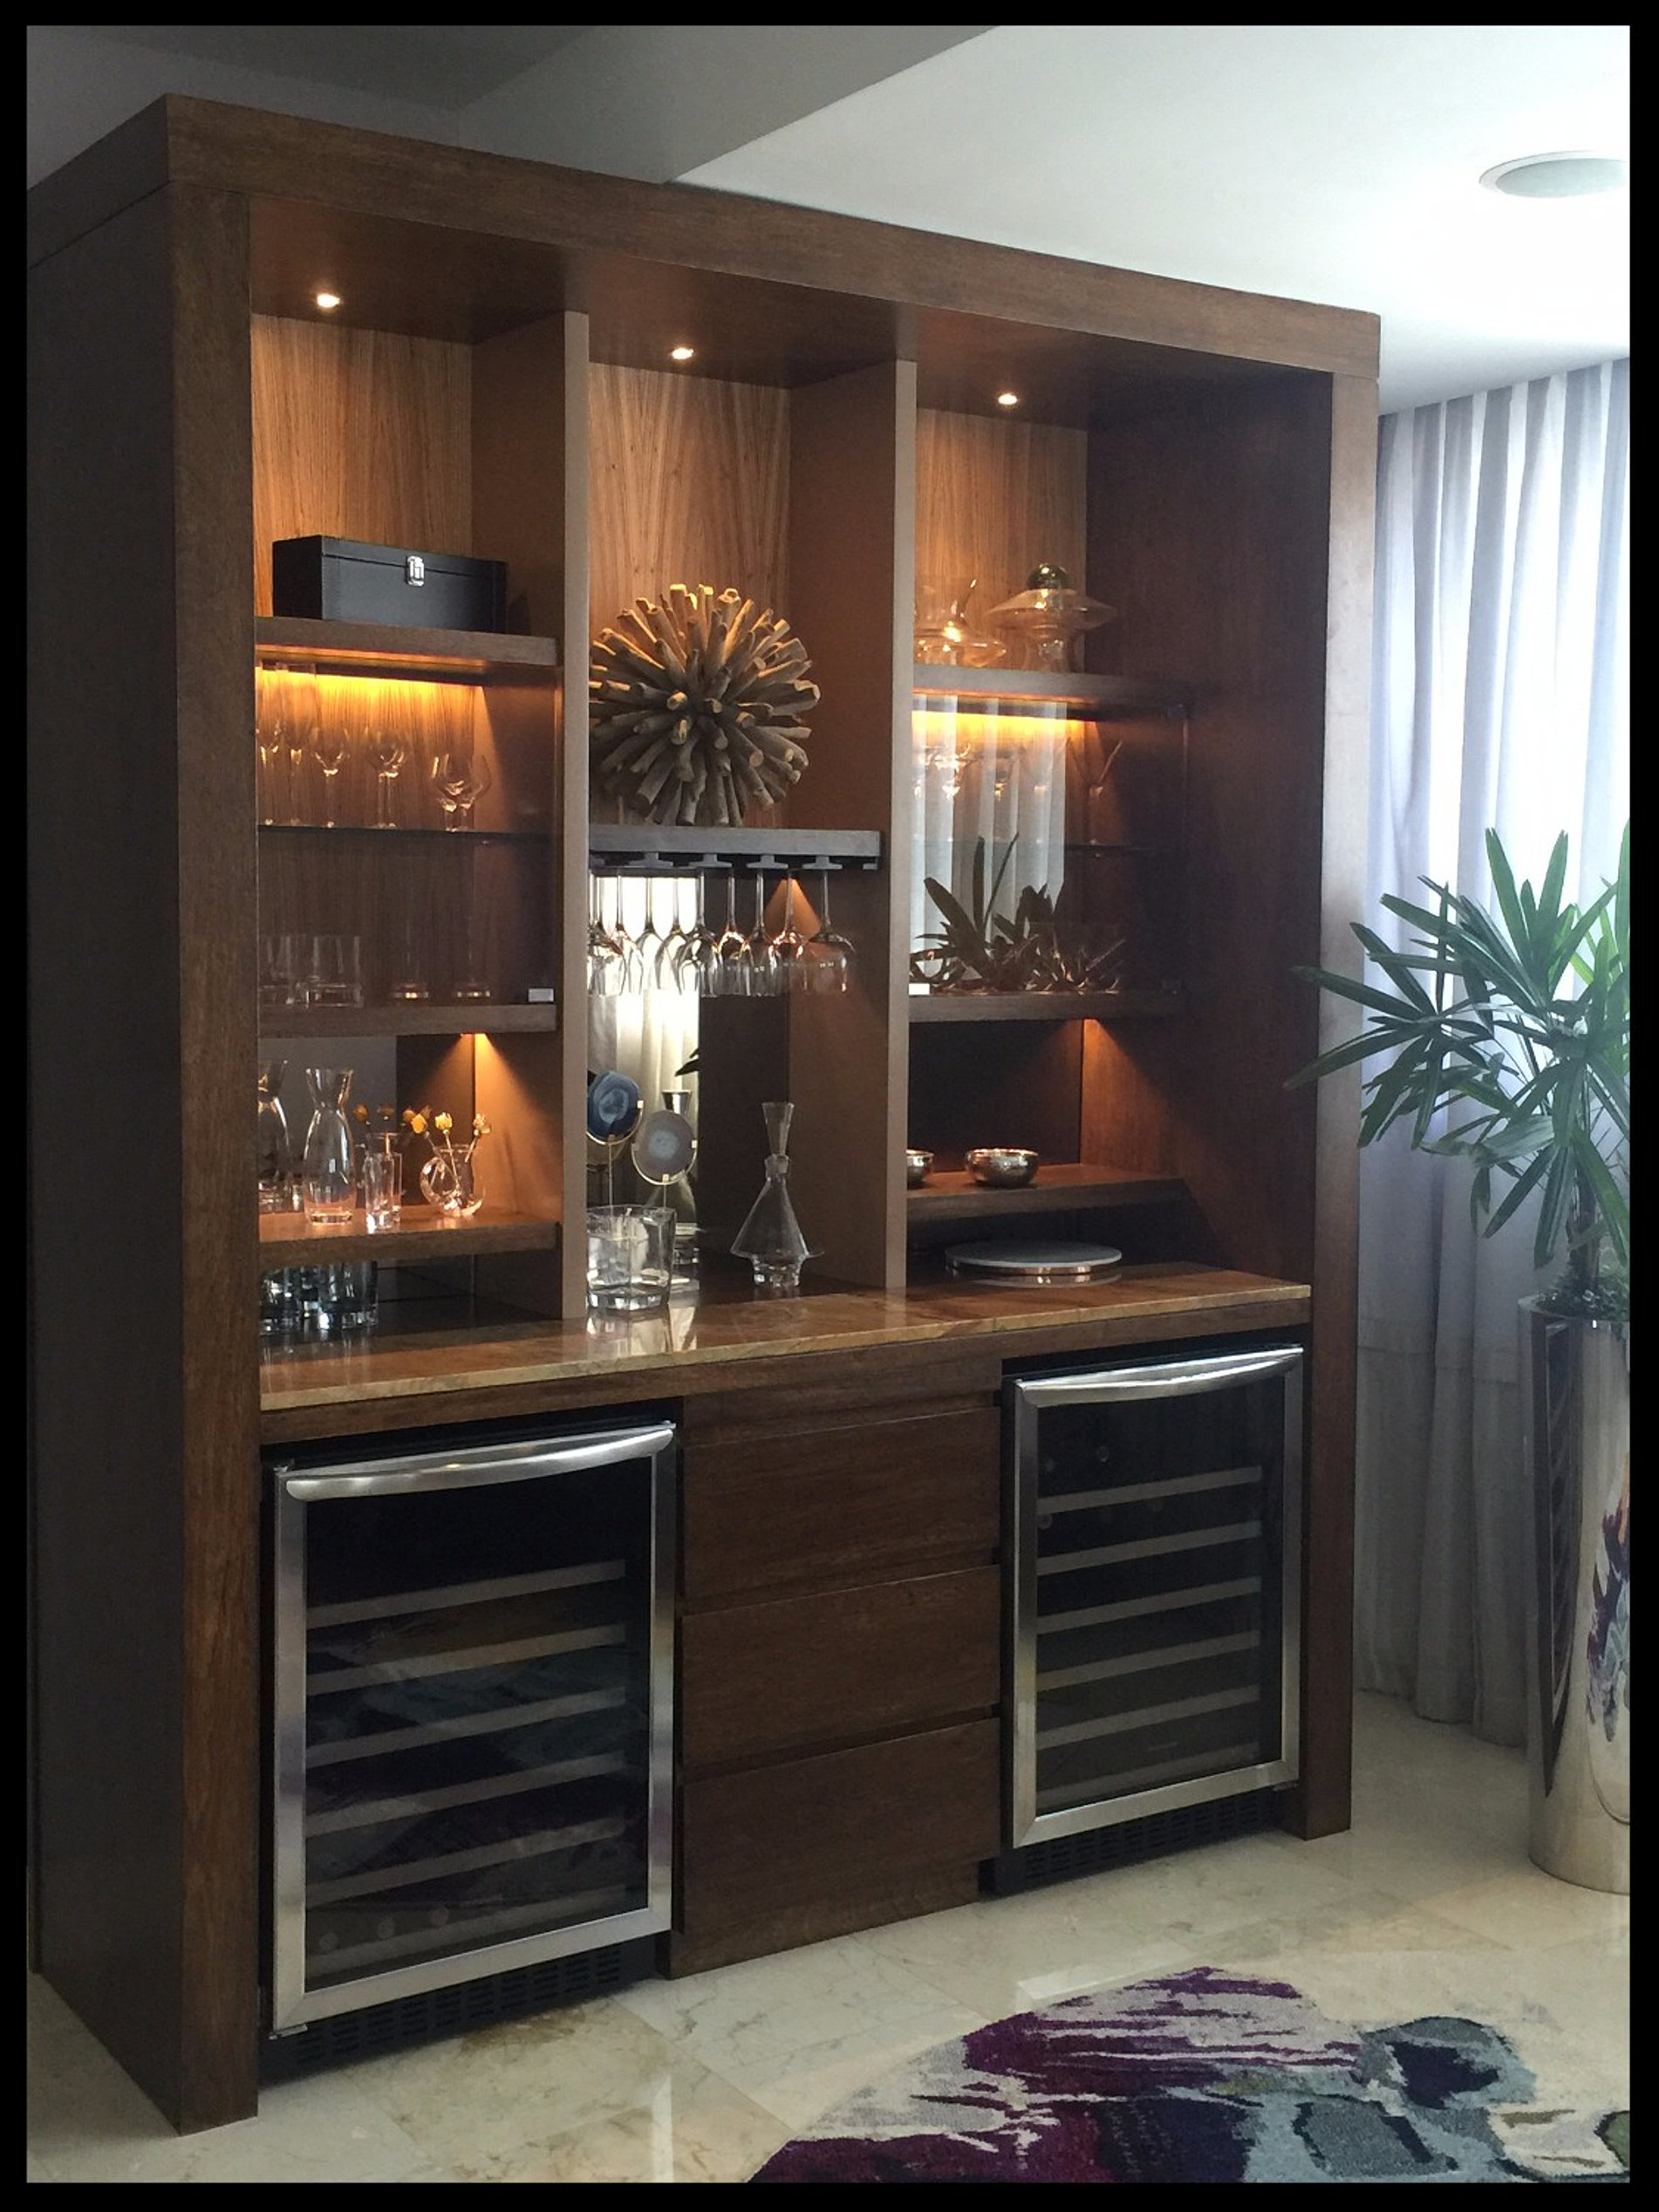 Ccprojectdesign Muebles Bar # Muebles Humidores Para Puros